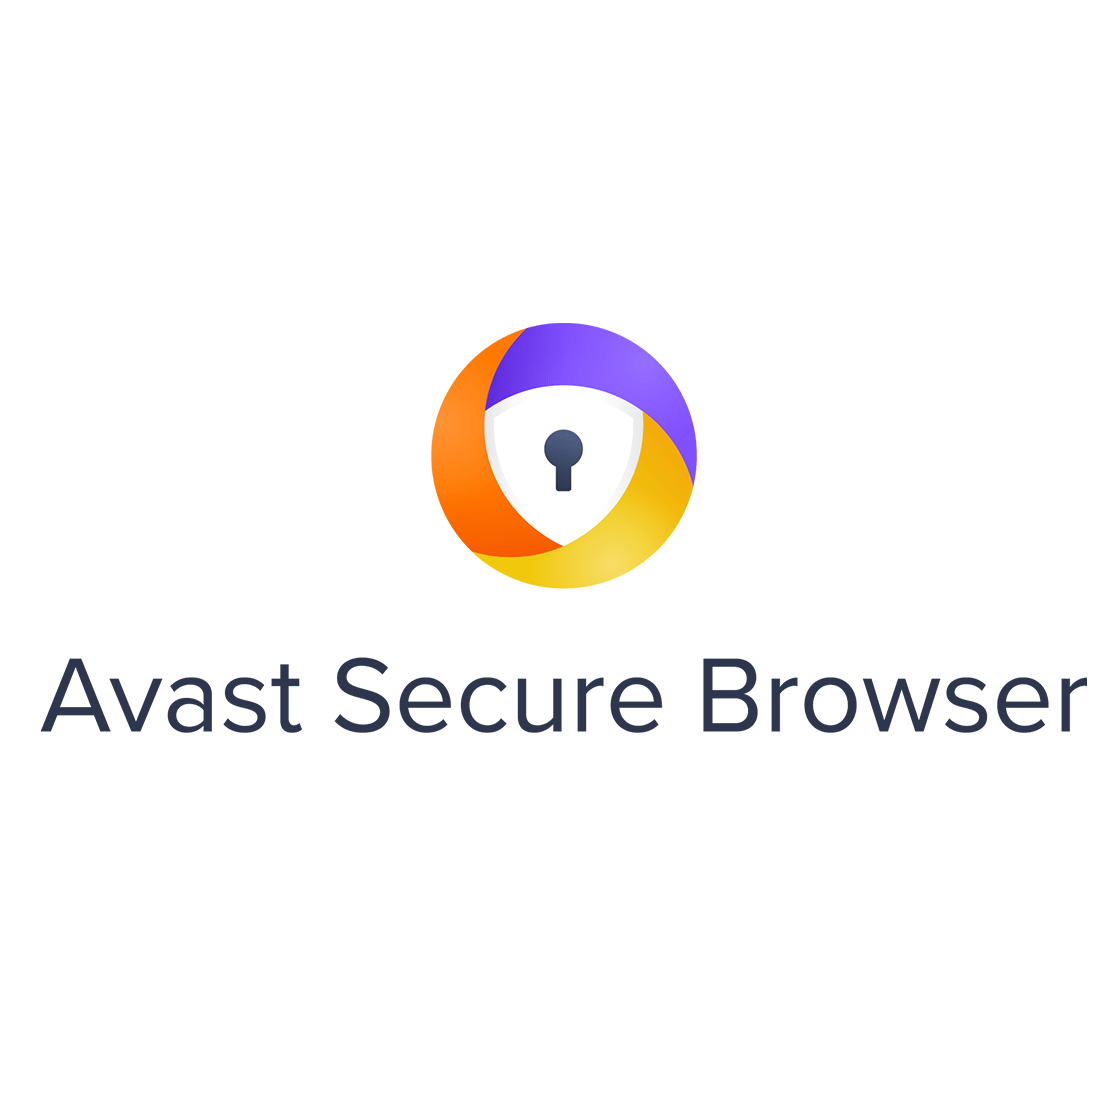 Problem removing or uninstalling Avast Secure browser? We have the fix